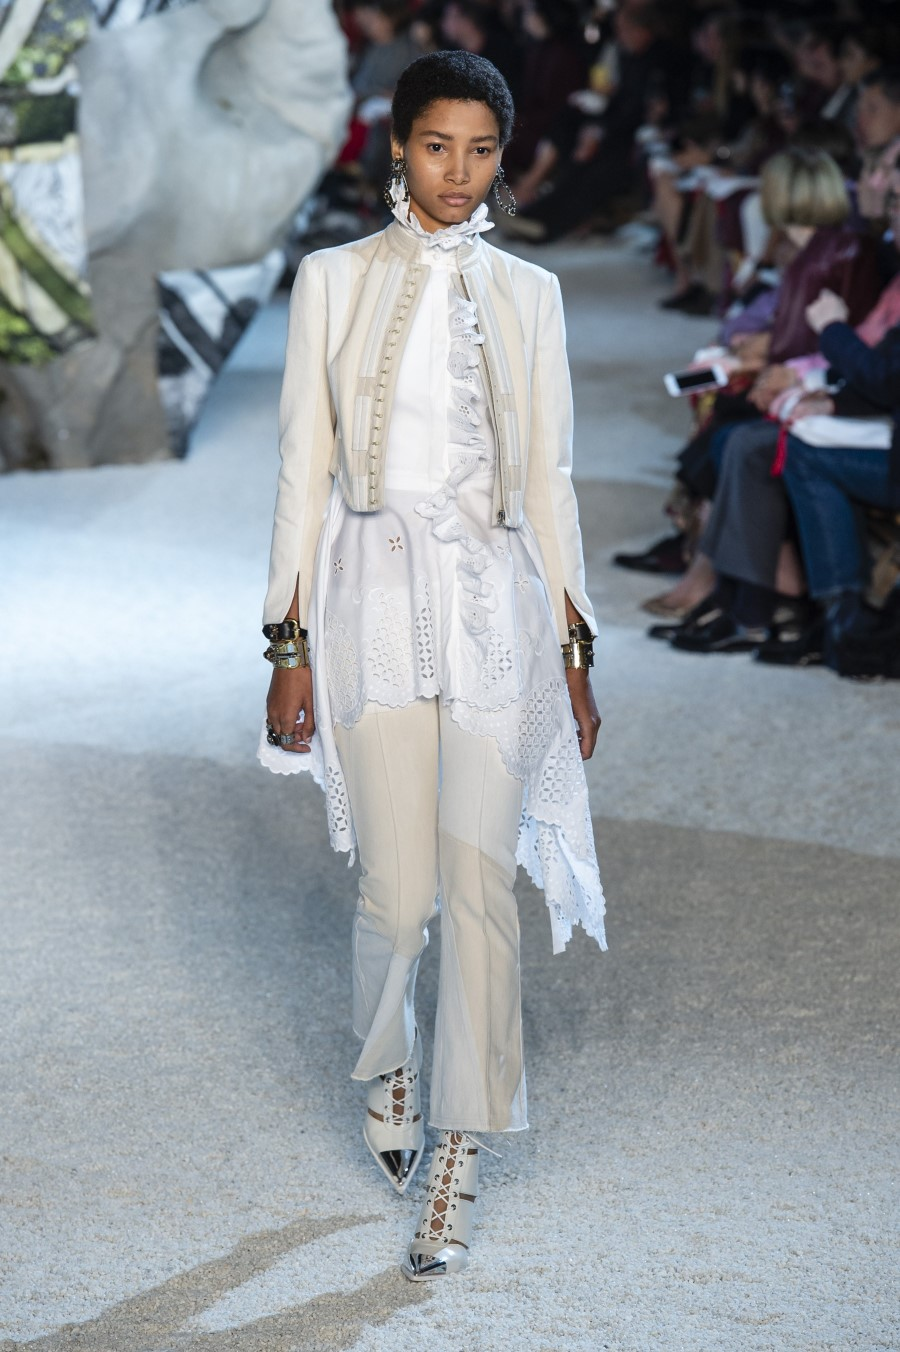 Alexander McQueen Spring Summer 2019 – Paris Fashion Week